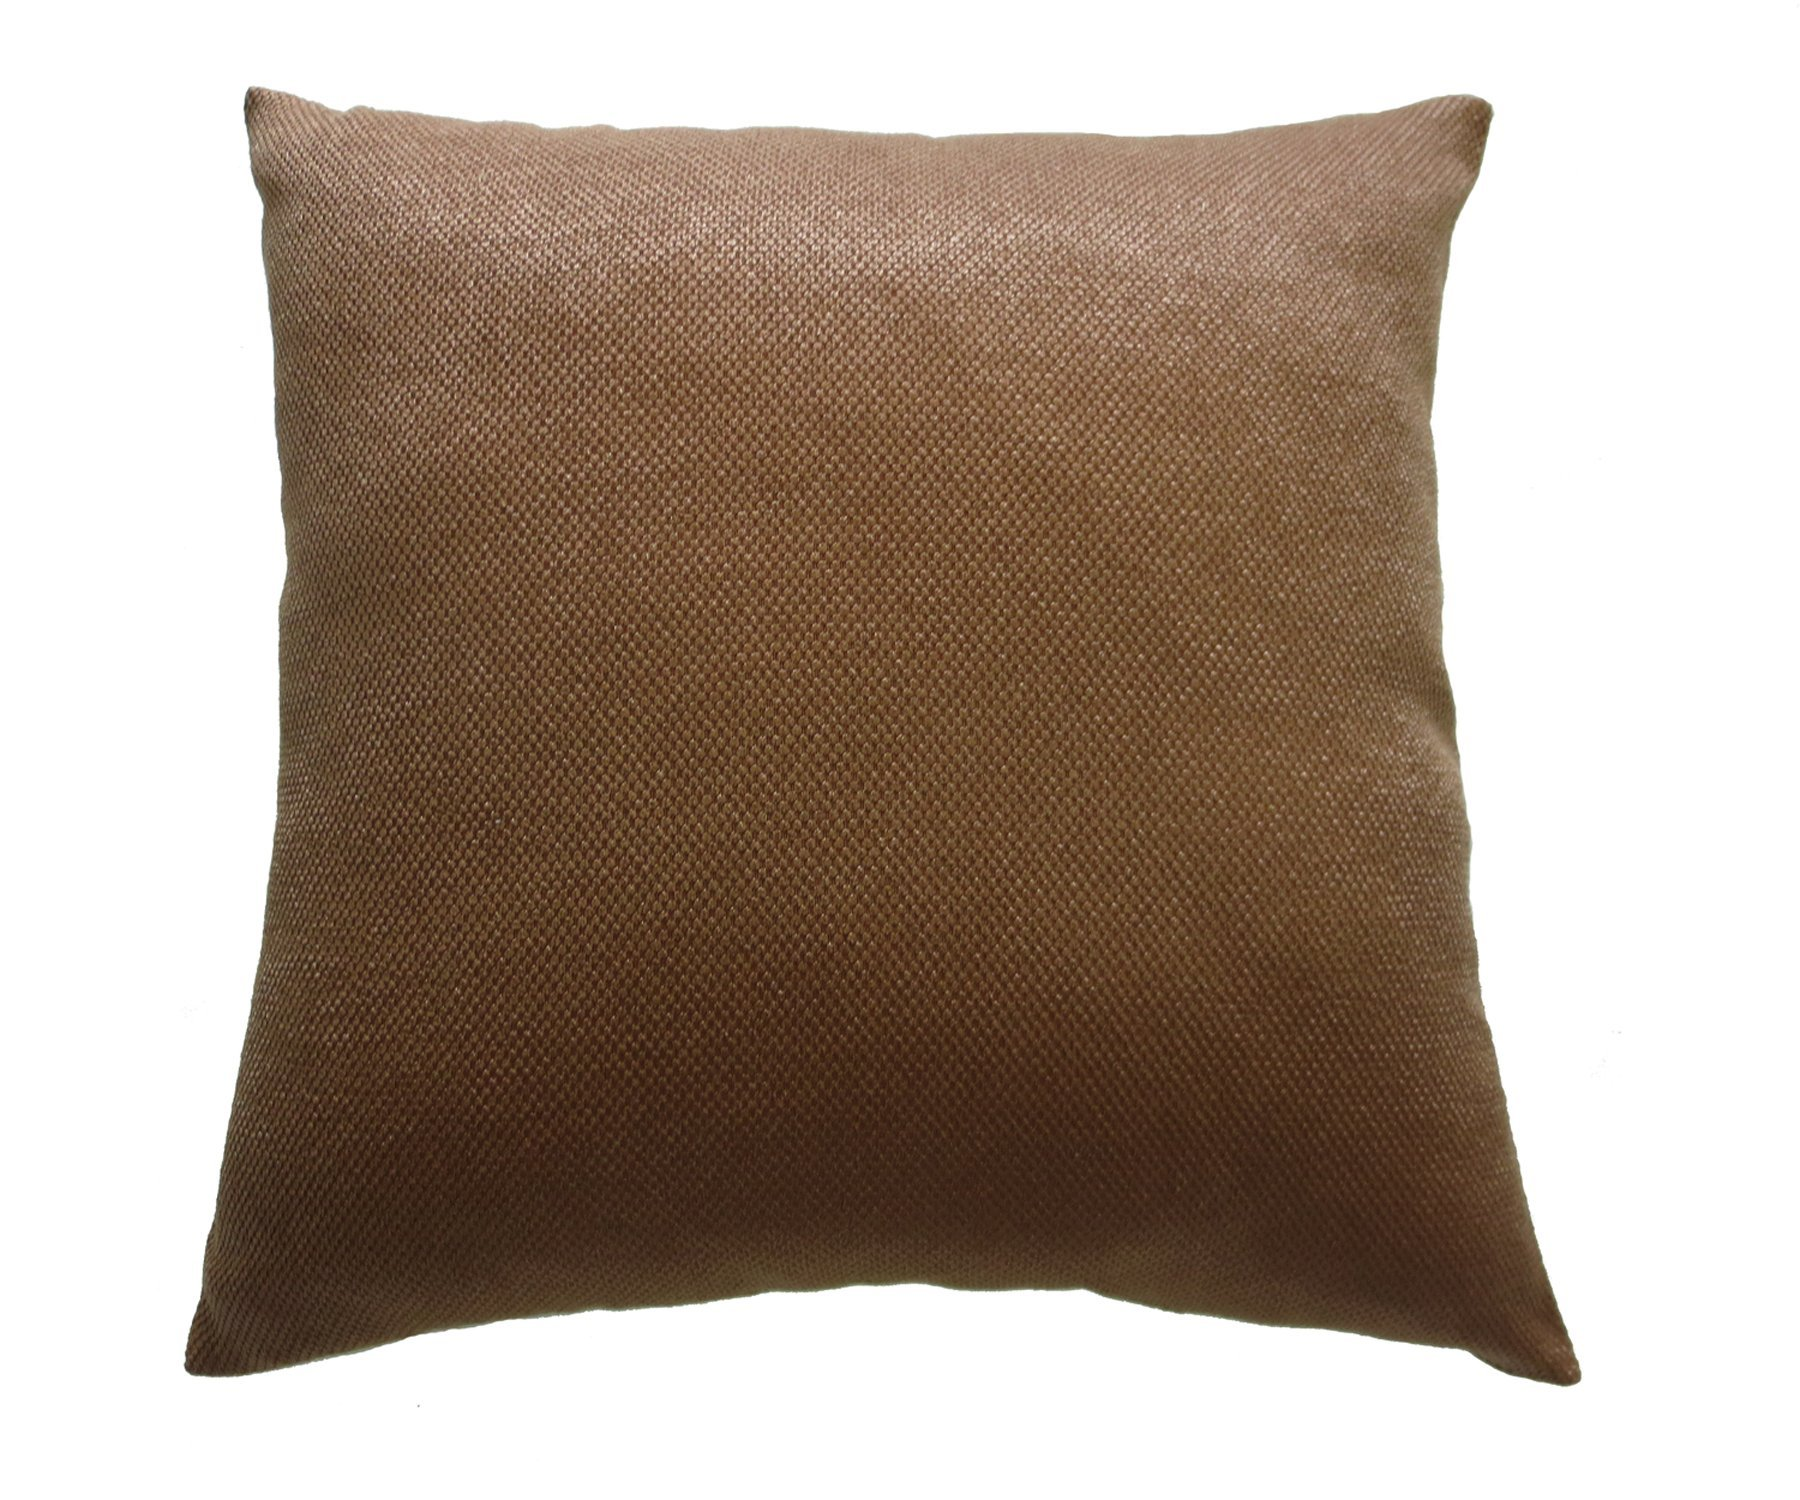 Violet Linen Luxurious Chenille Abstract Collection Decorative Throw Pillow, 18'' x 18'', Brown